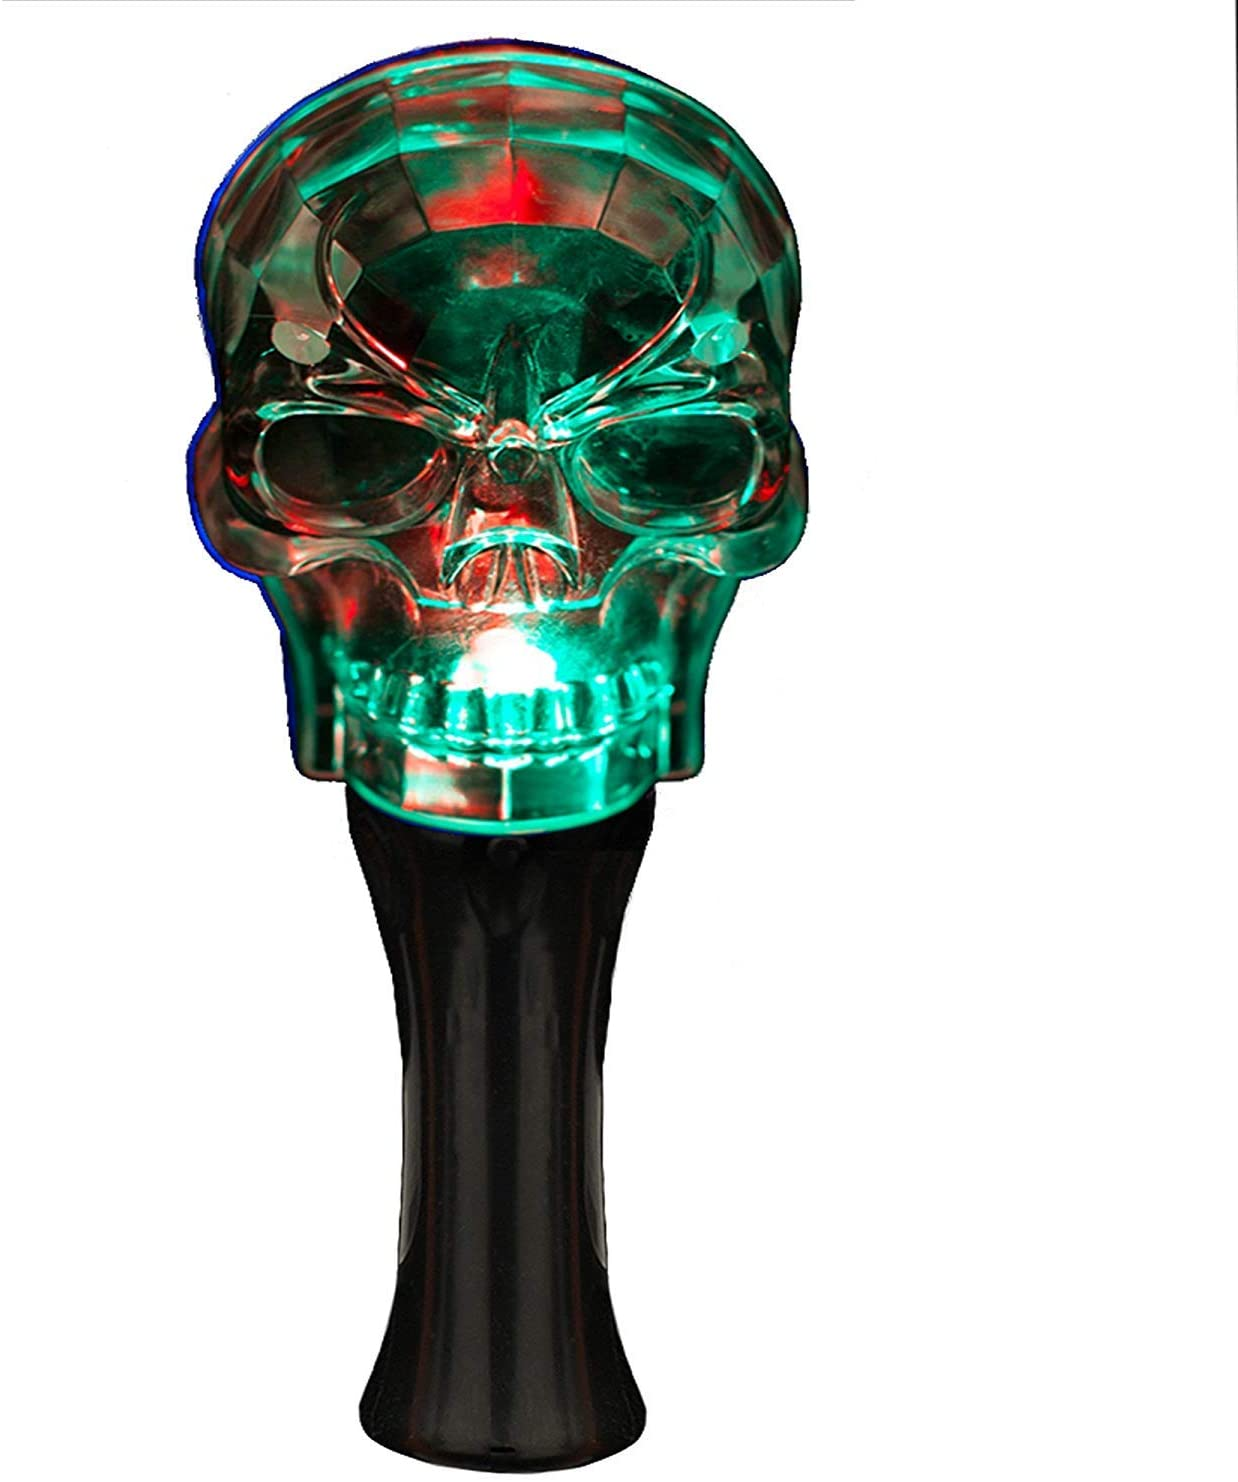 Fun Central 8 Inches LED Light Up Crystal Skull Wand for Kids' & Toddlers' Halloween Accessory